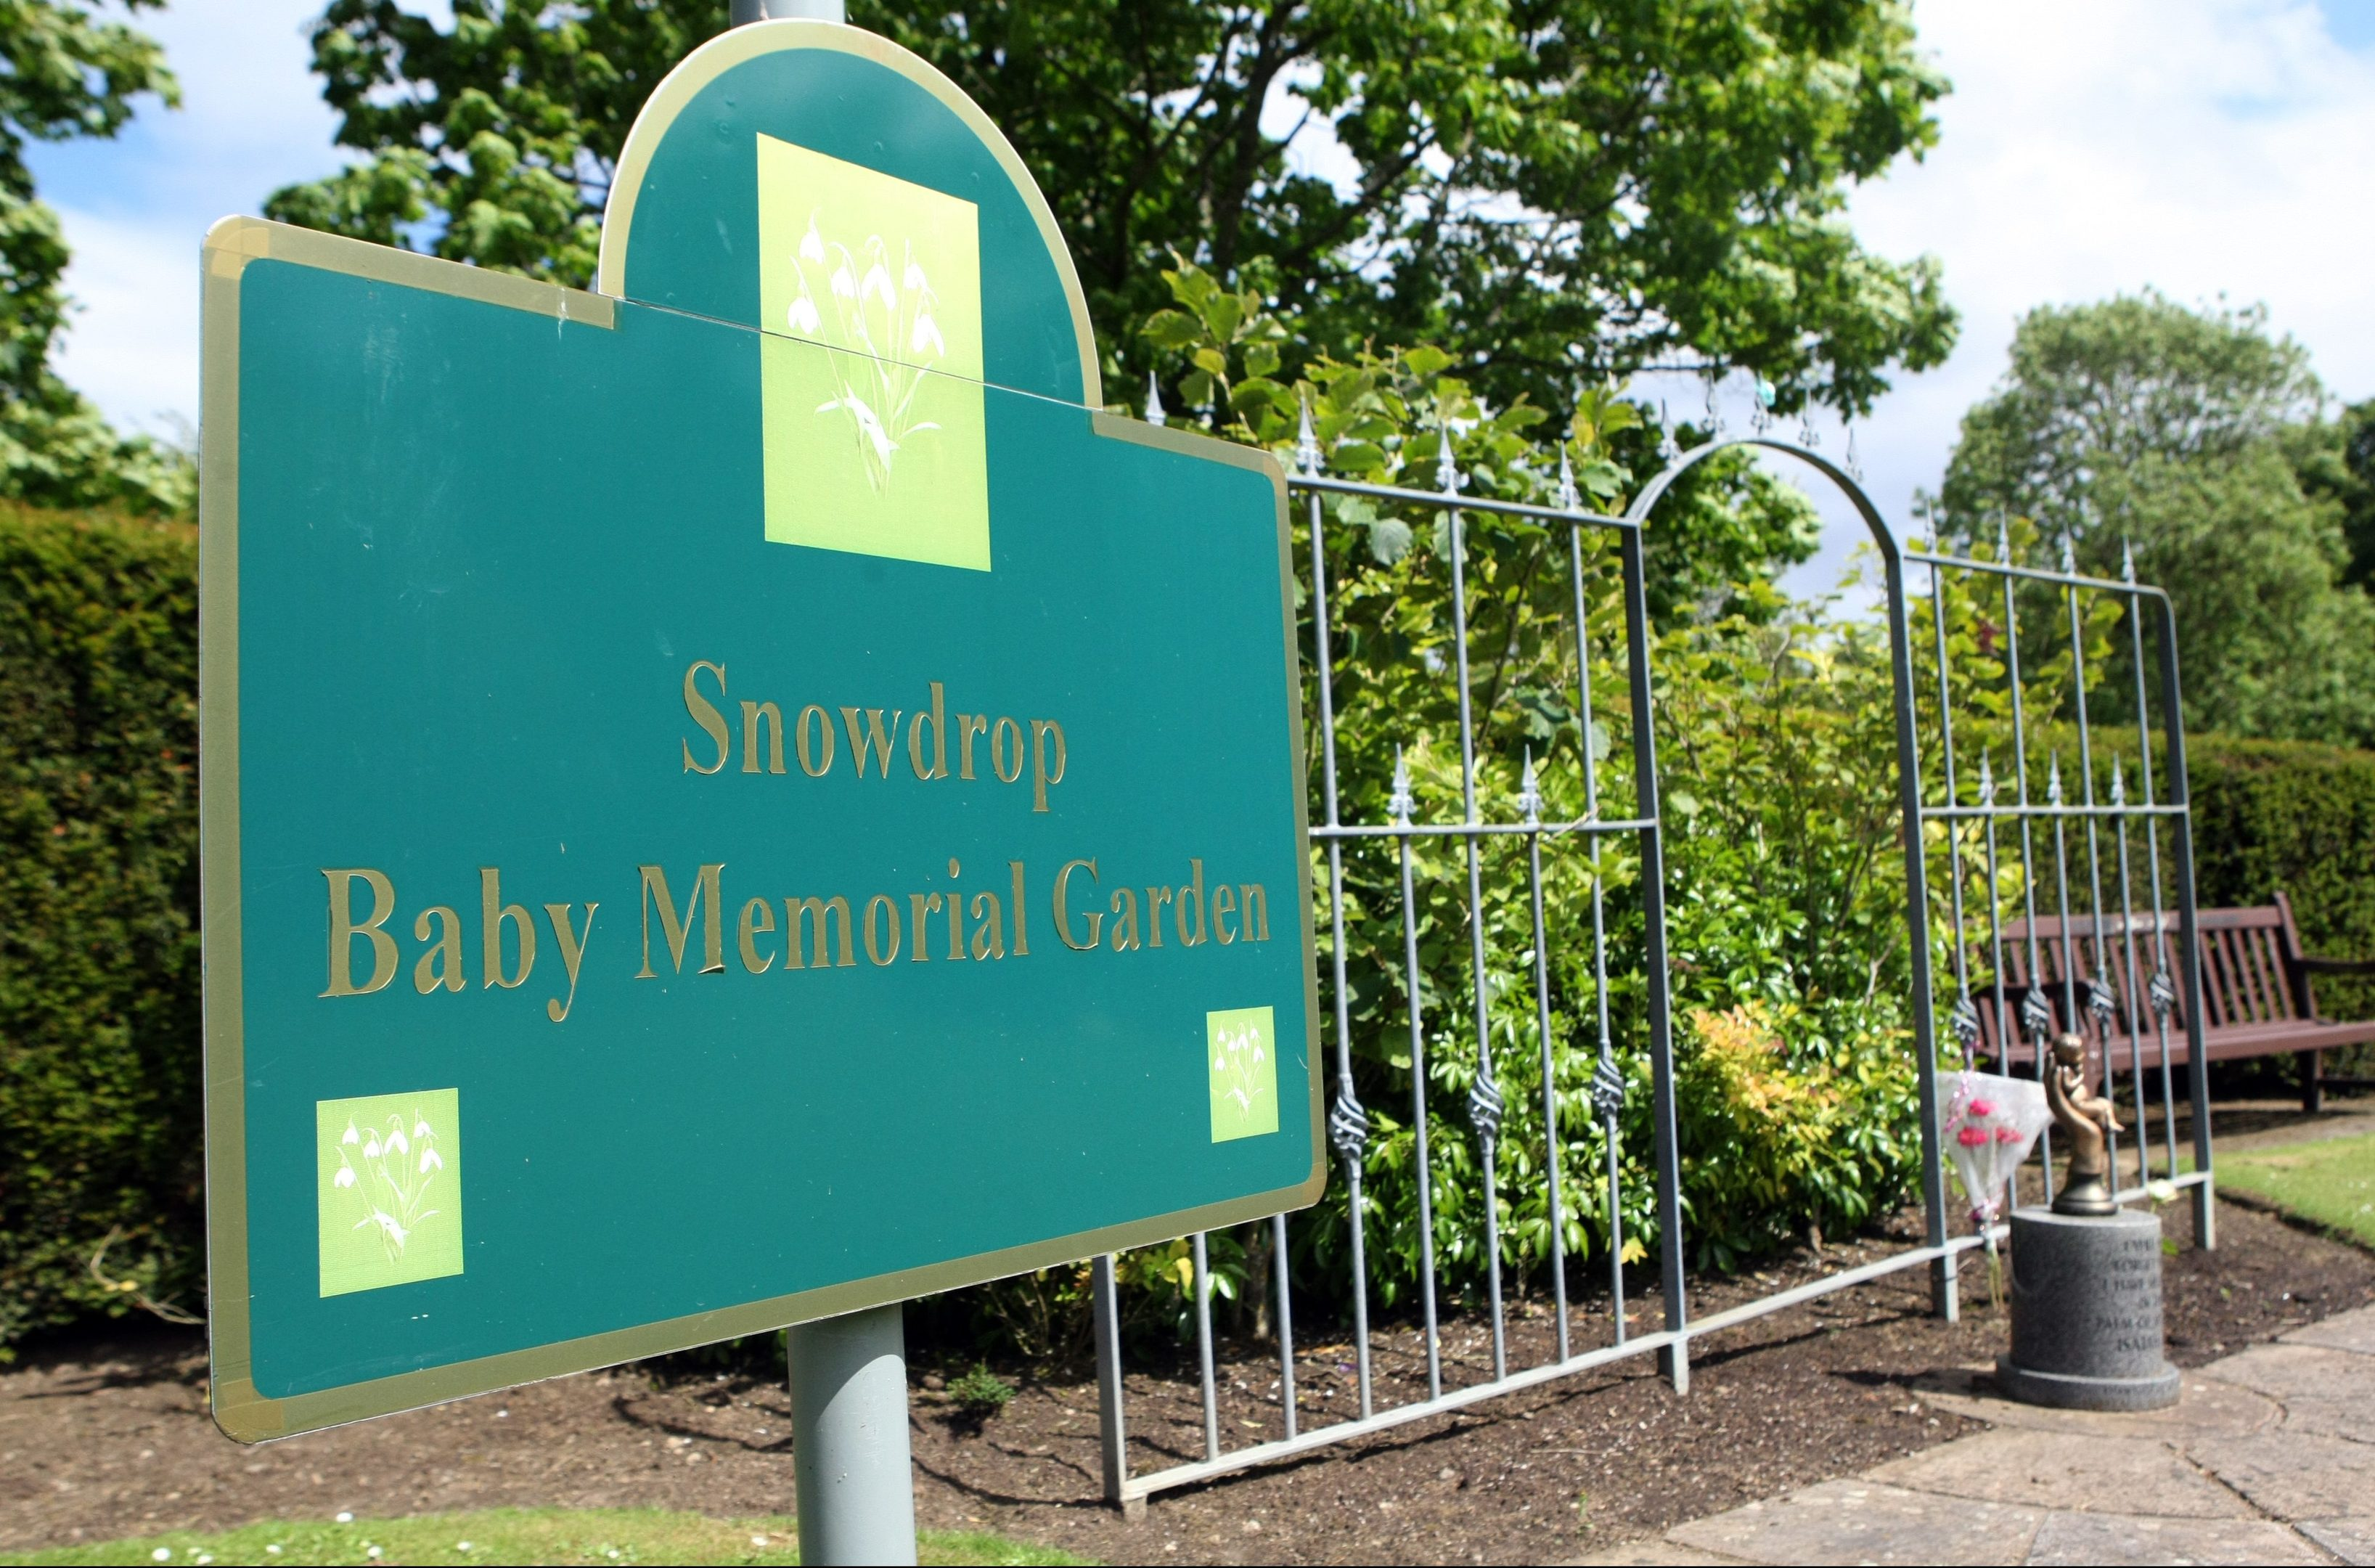 Kirkcaldy Crematorium and Remembrance Garden with Snowdrop Baby Memorial Garden.